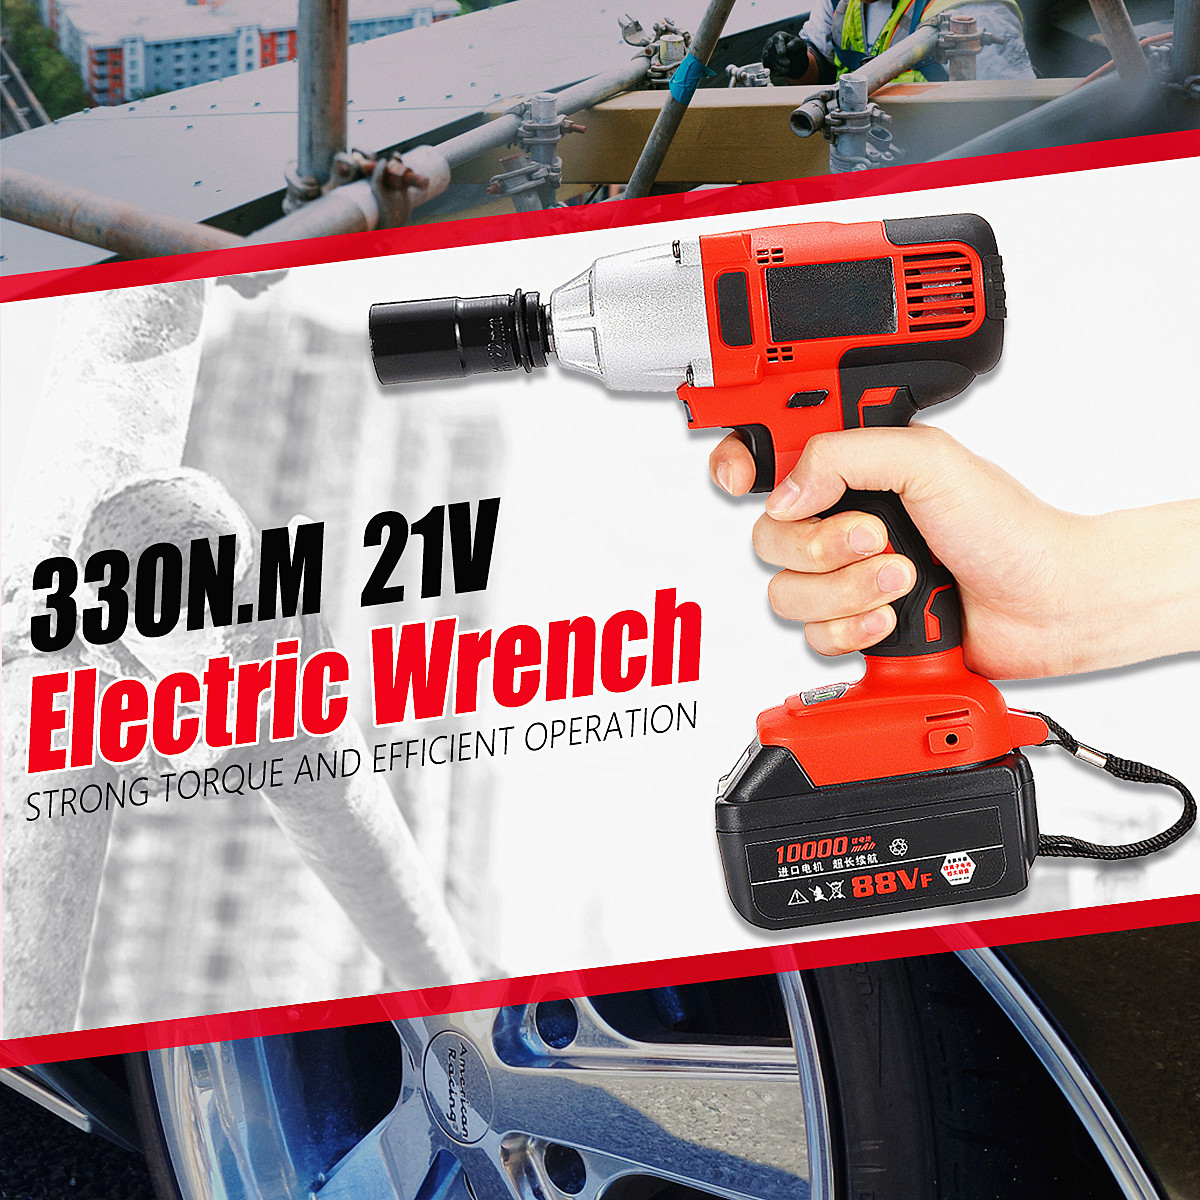 330N.M Cordless Electric Wrench Impact Socket Wrench 21V 10000mAh Li Battery Hand Drill Installation Power Tools цена